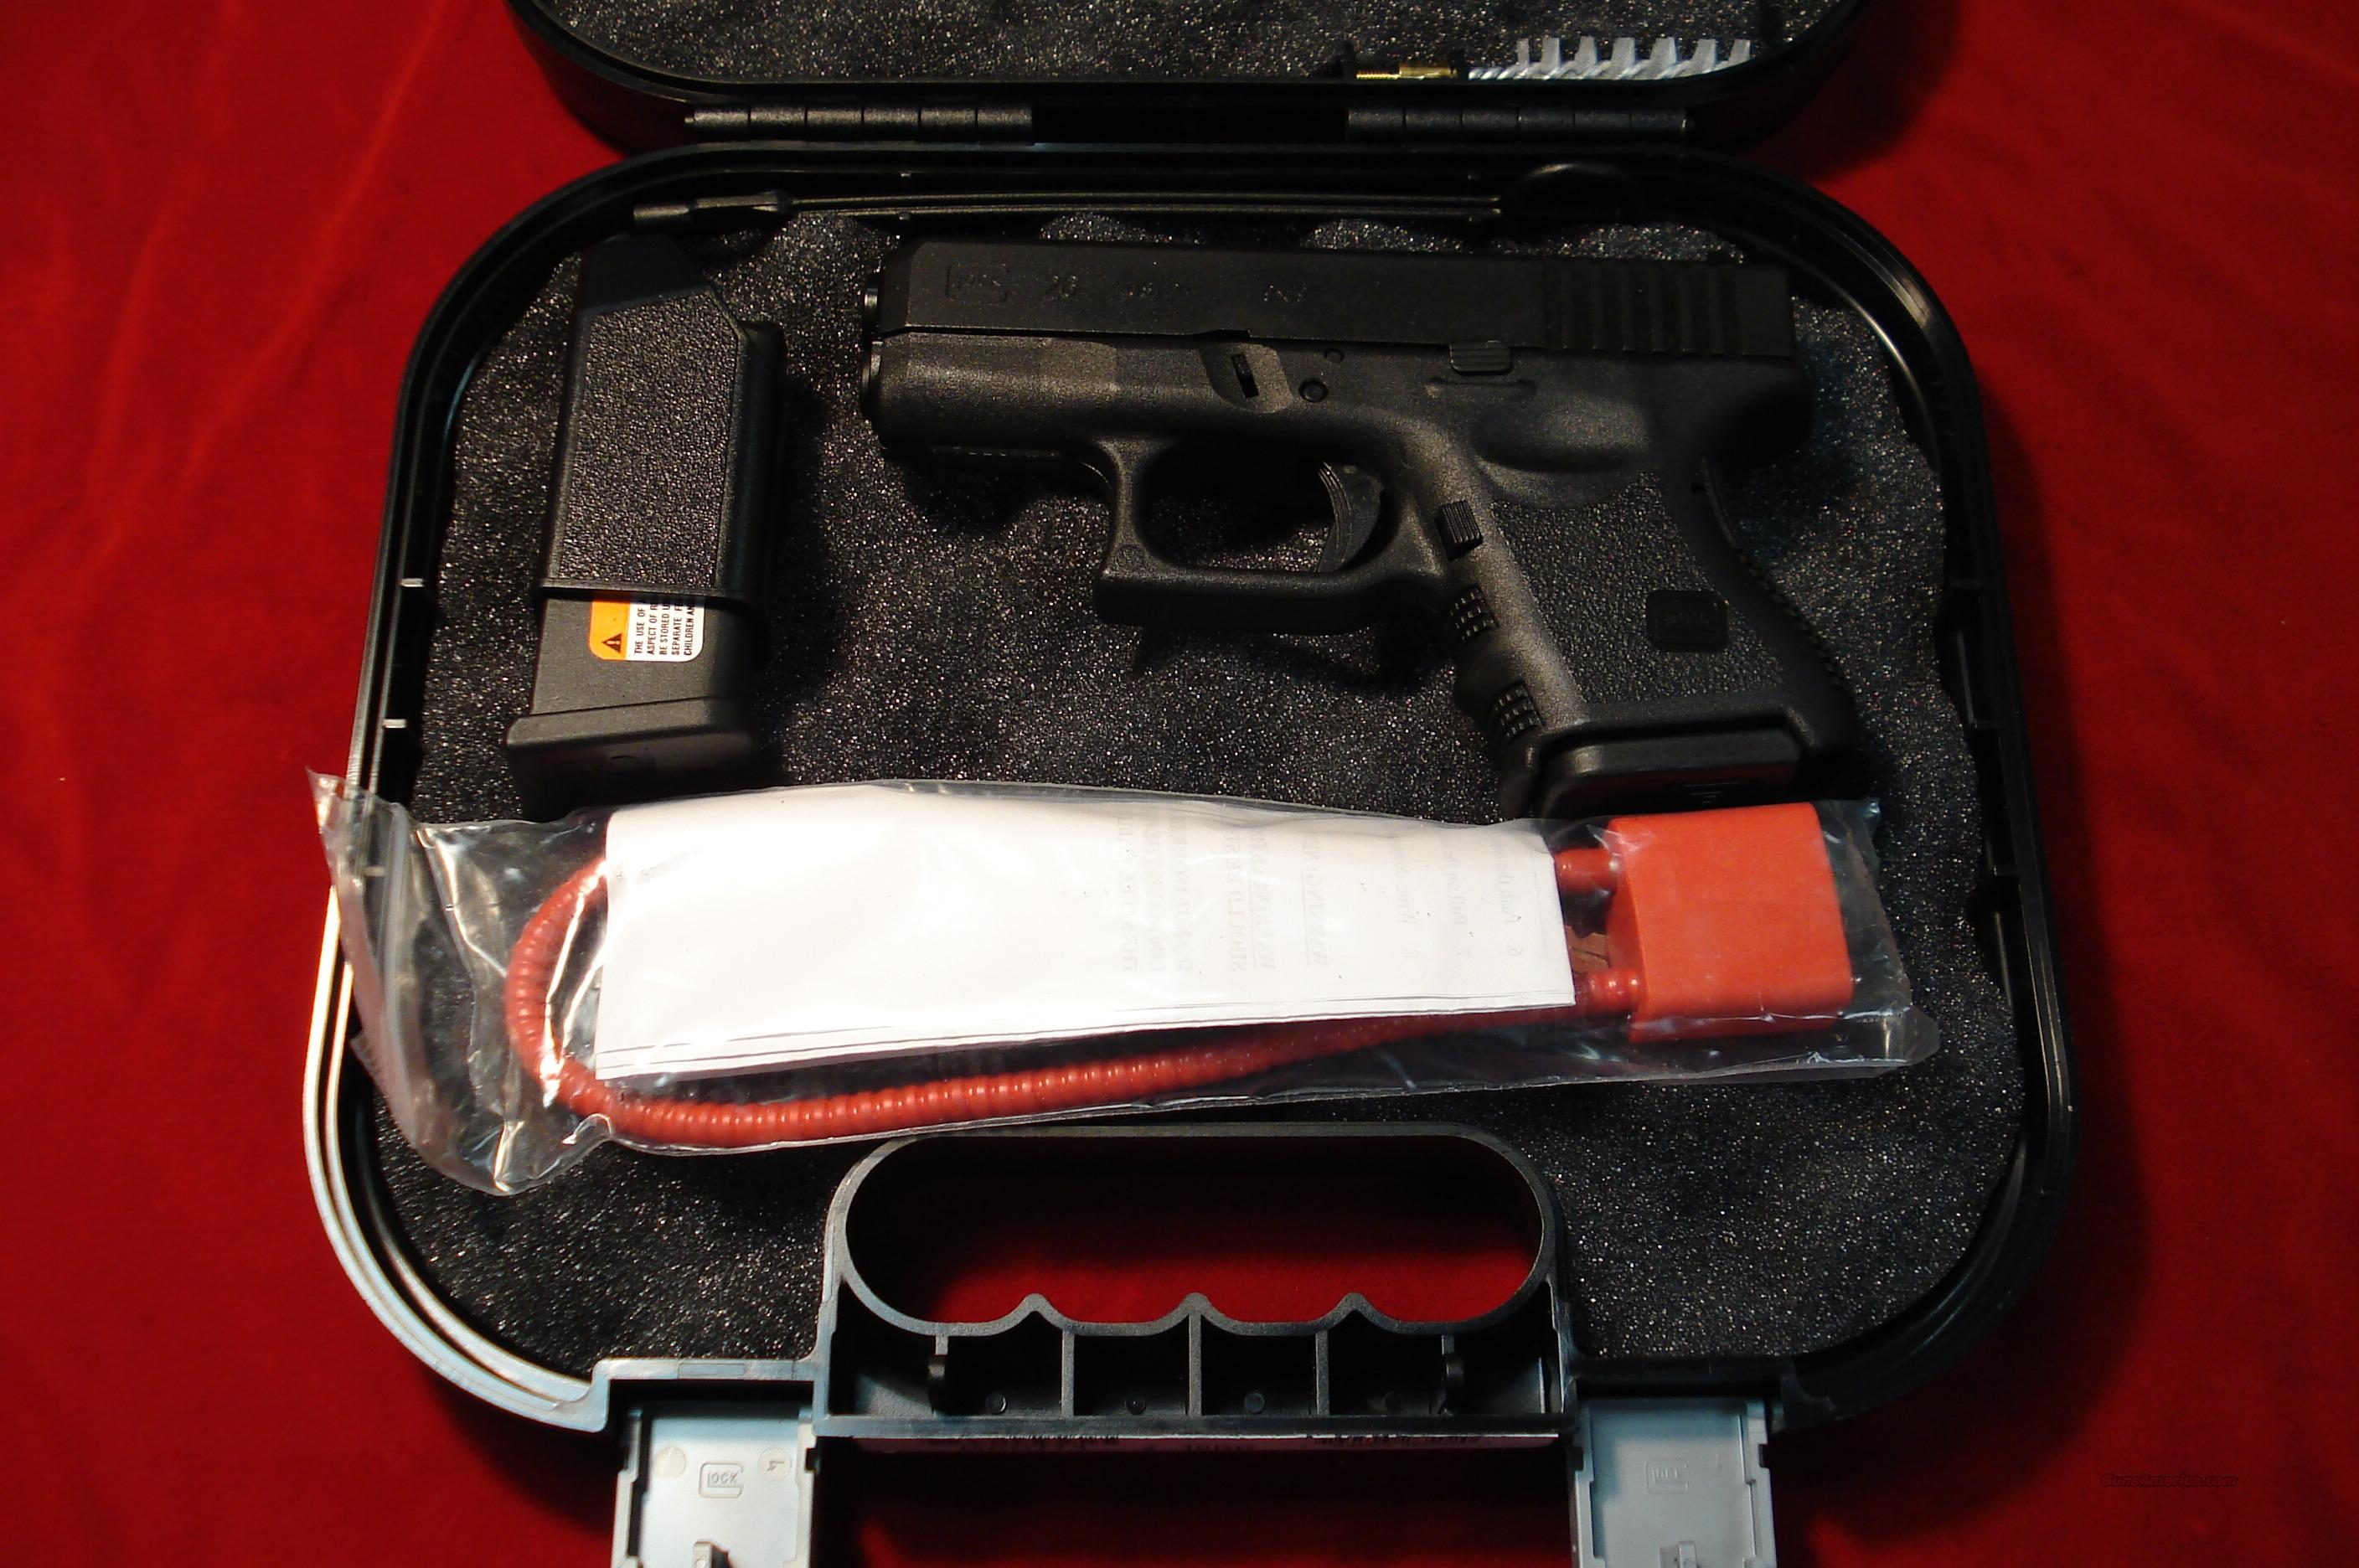 GLOCK MODEL 26 9MM NEW   Guns > Pistols > Glock Pistols > 26/27